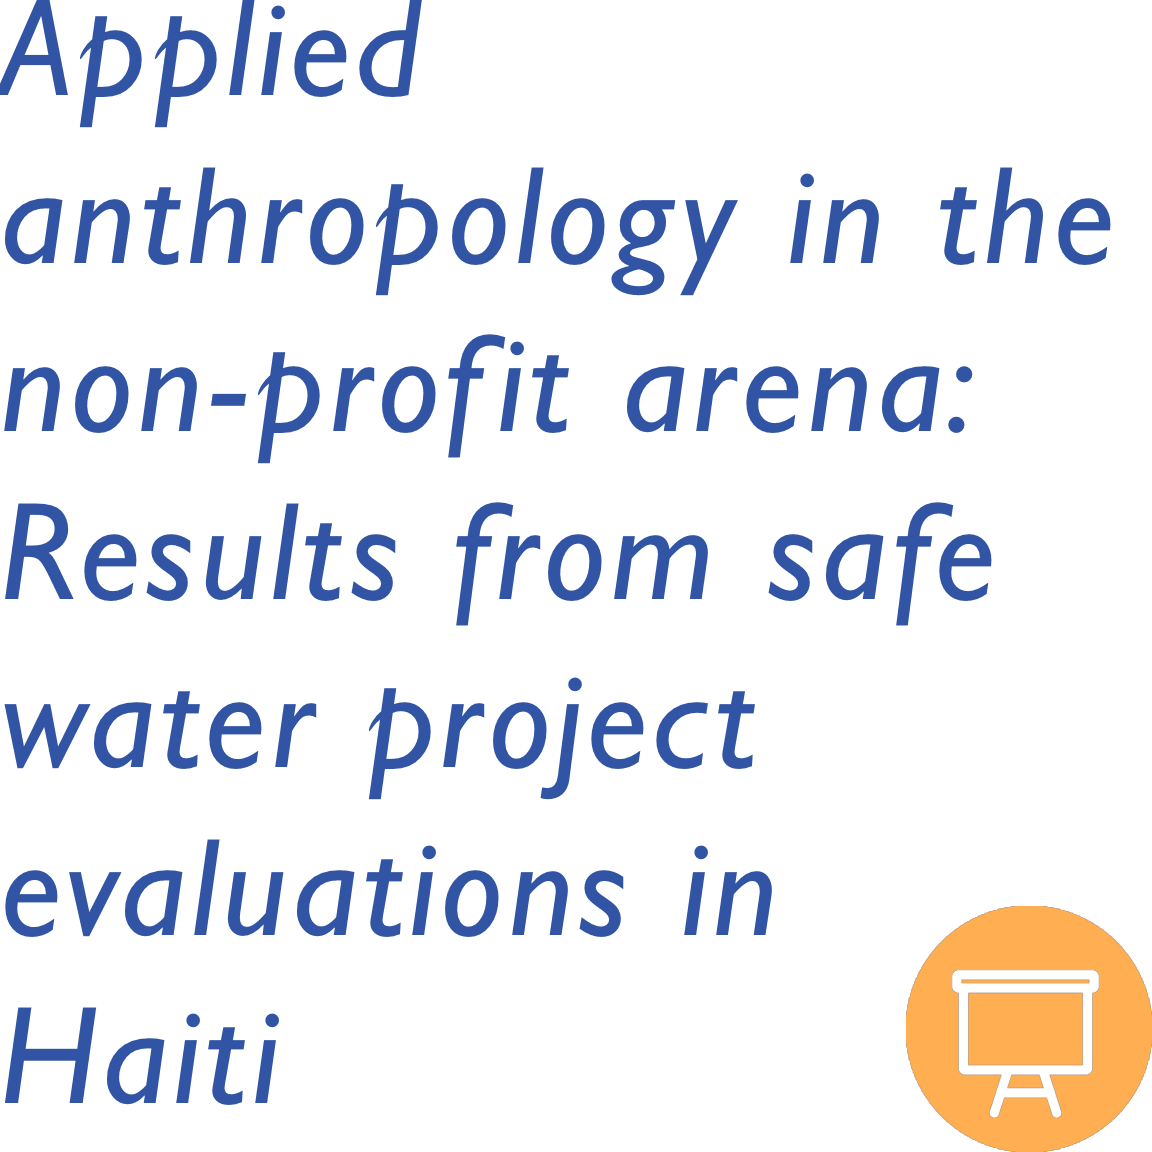 Applied anthropology in the non-profit arena: Results from safe water project evaluations in Haiti